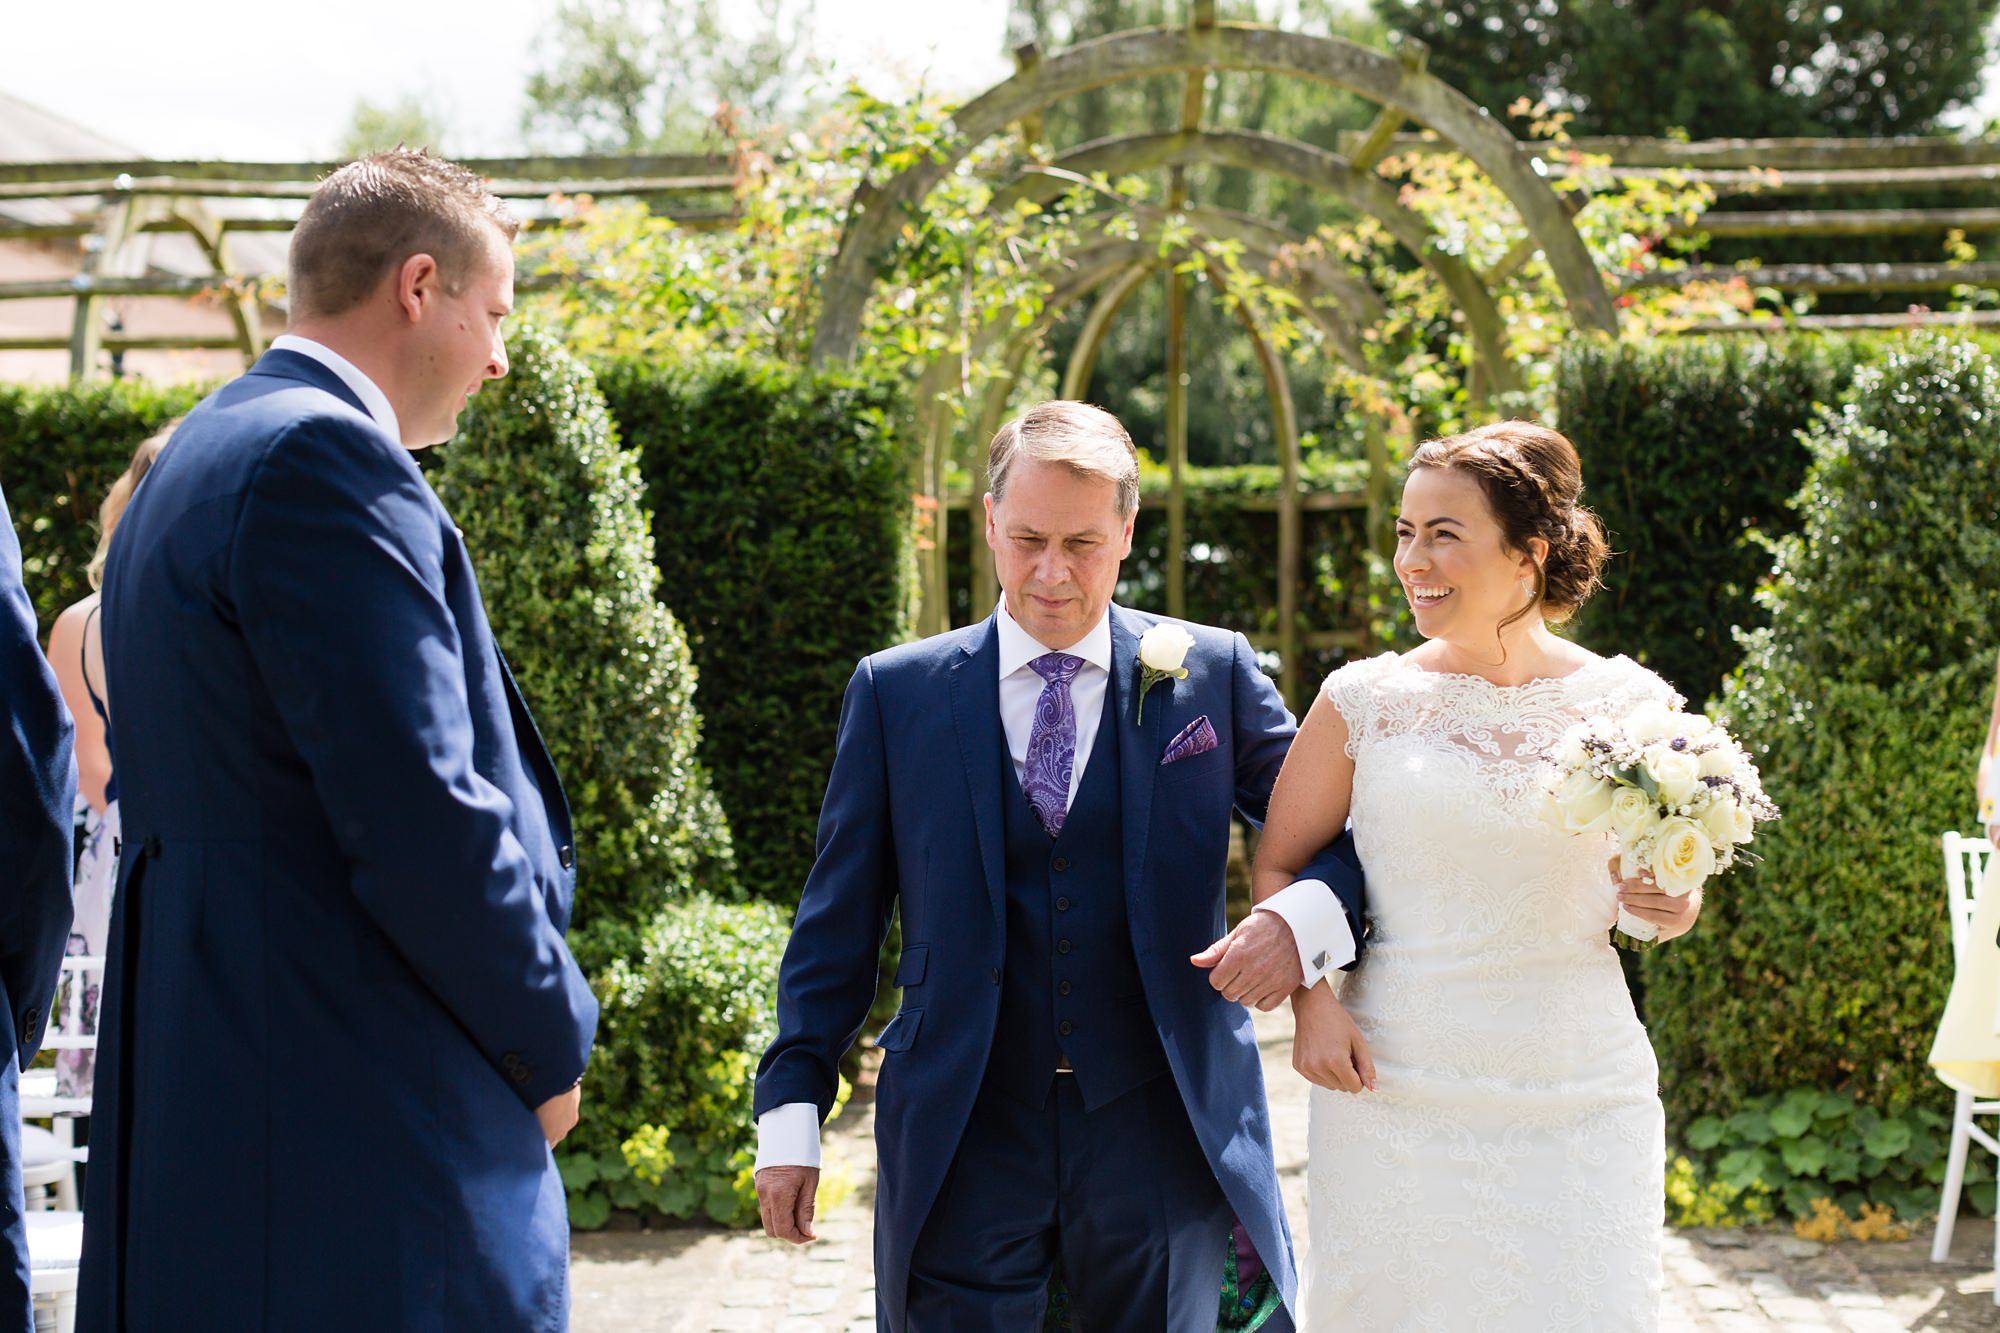 Bell Hall Wedding Photography outdoor wedding ceremony in Yokrshire